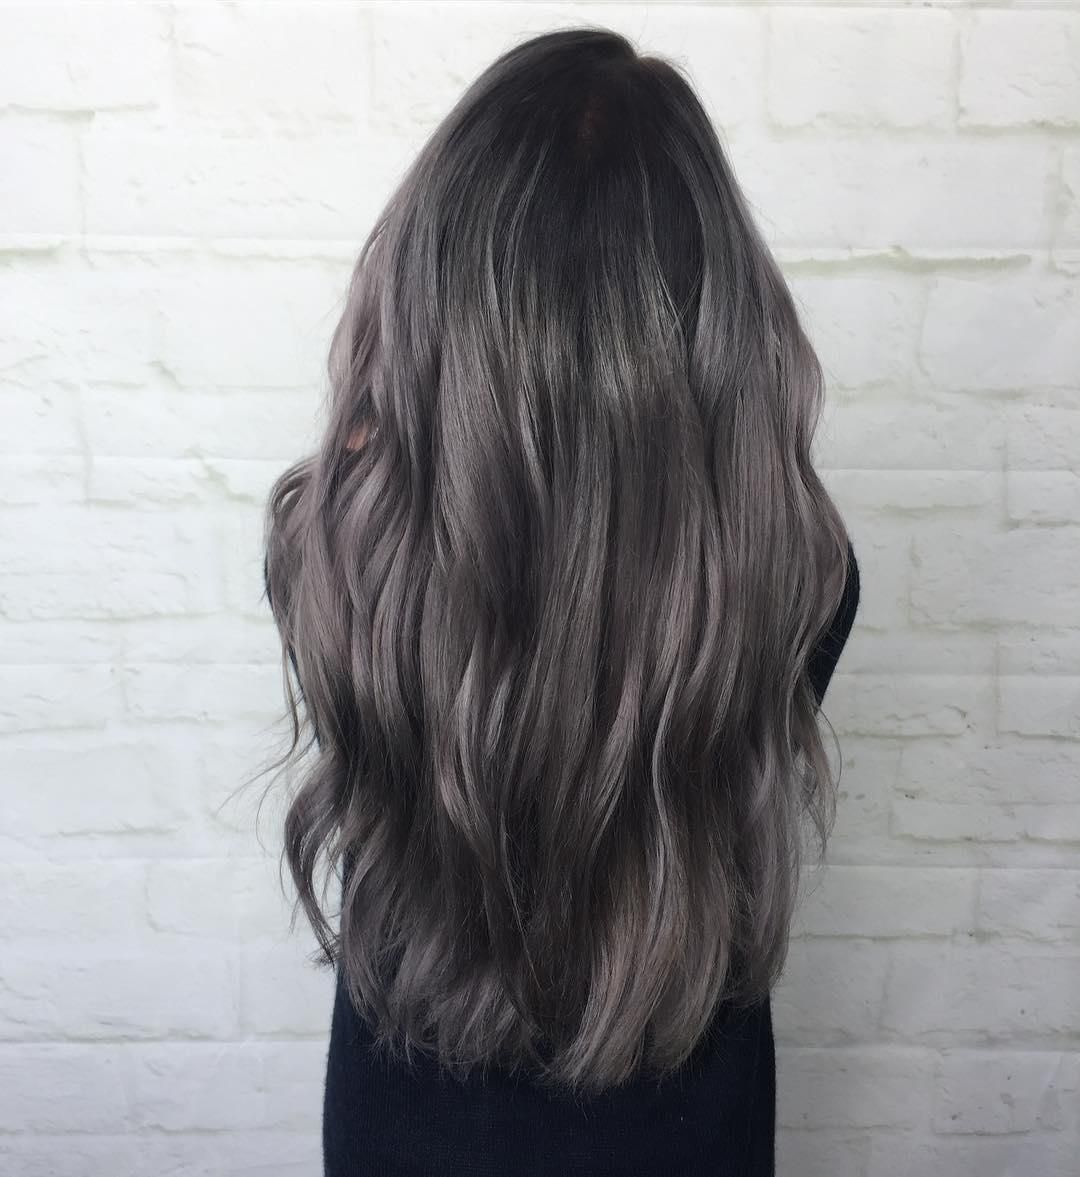 Grey And Dark Blue Bedroom Ideas: Dark Smoky Grey Aveda Hair Color By Aveda Artist Brittany